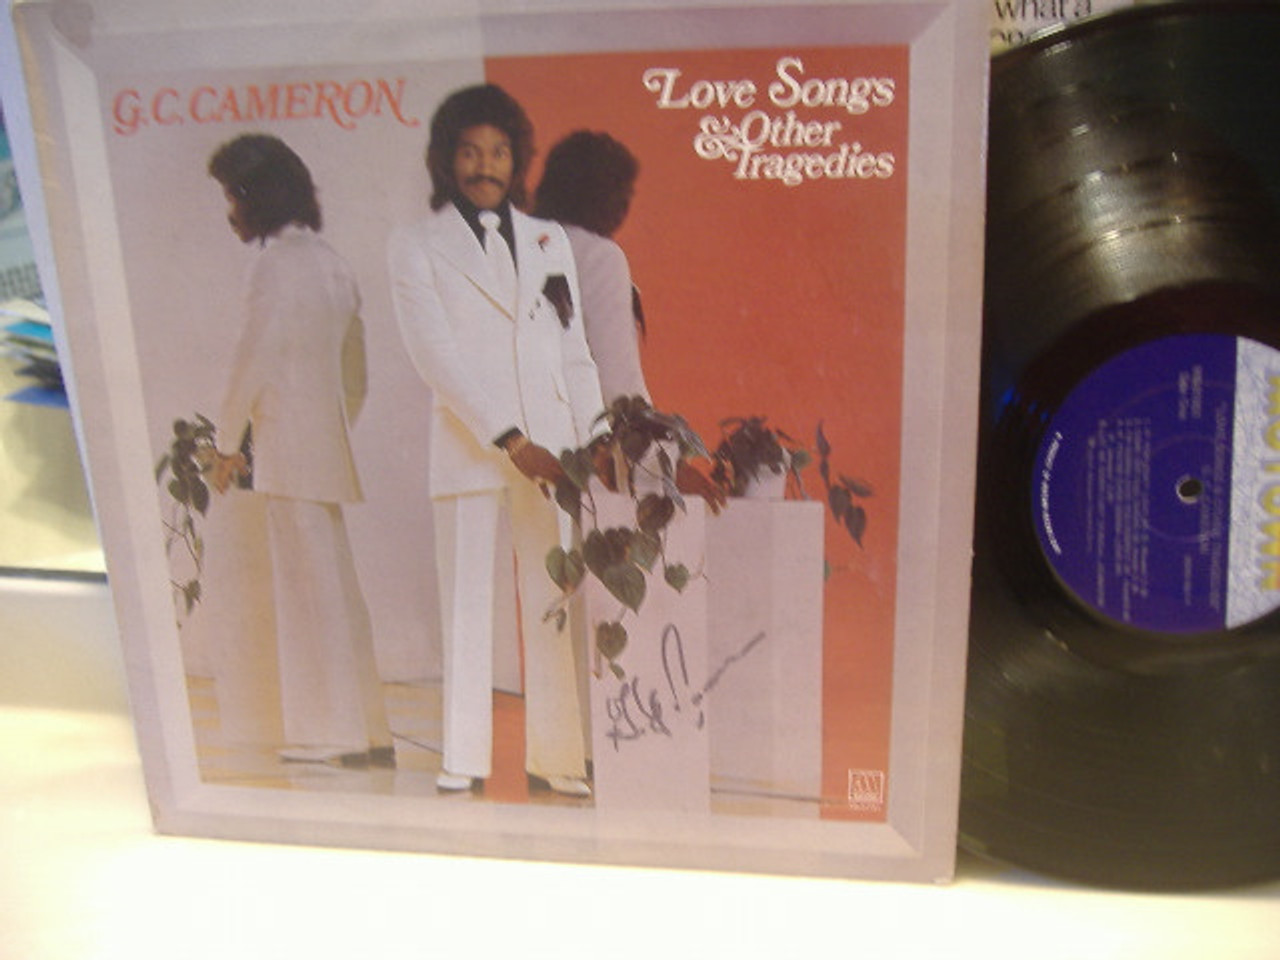 Cameron, Gc LP Signed Autograph Love Songs And Other Tragedies Soul